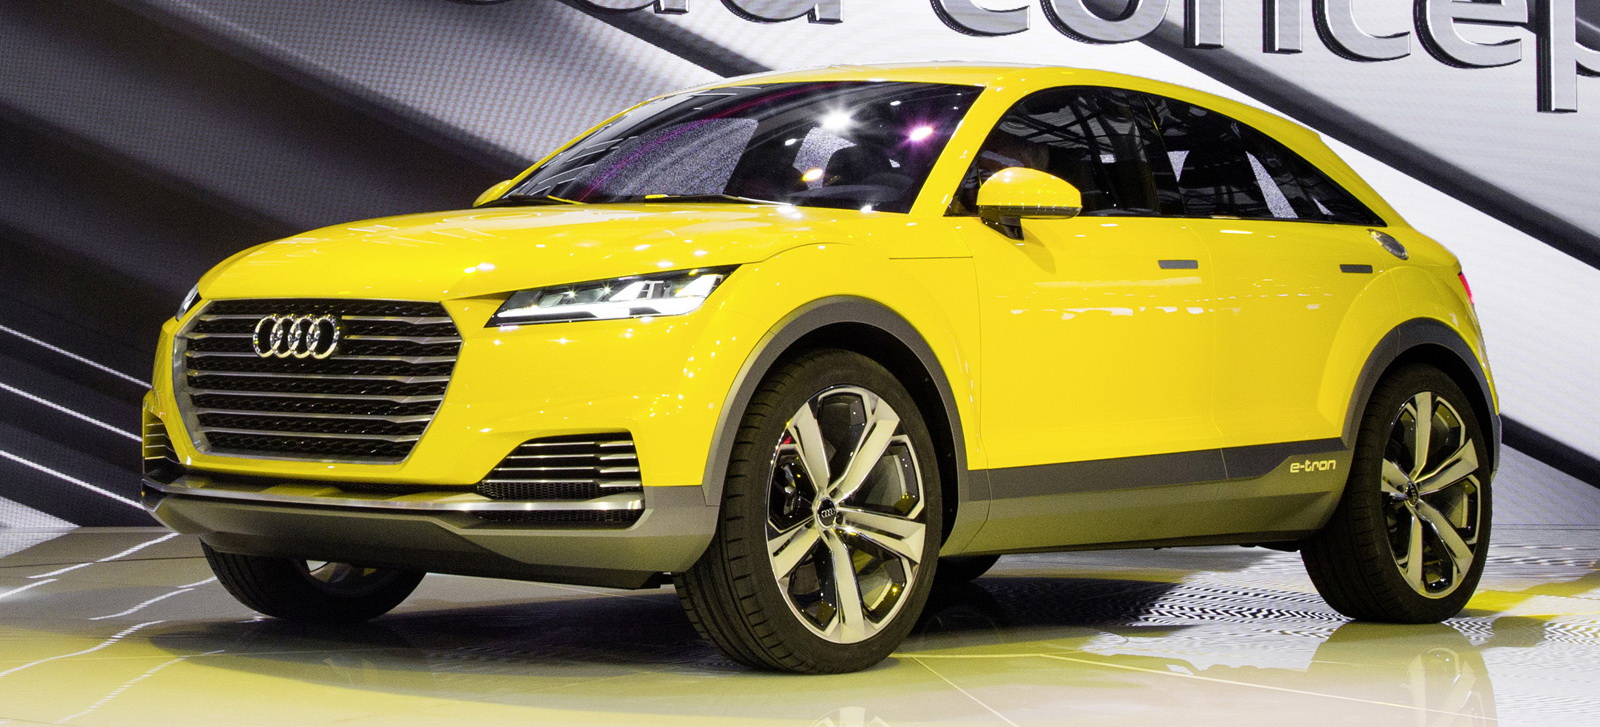 2020 Audi Q4 Unveiled! Release Date And Price >> 2020 Audi S8 Rumors Concept and Review 20182019 Cars